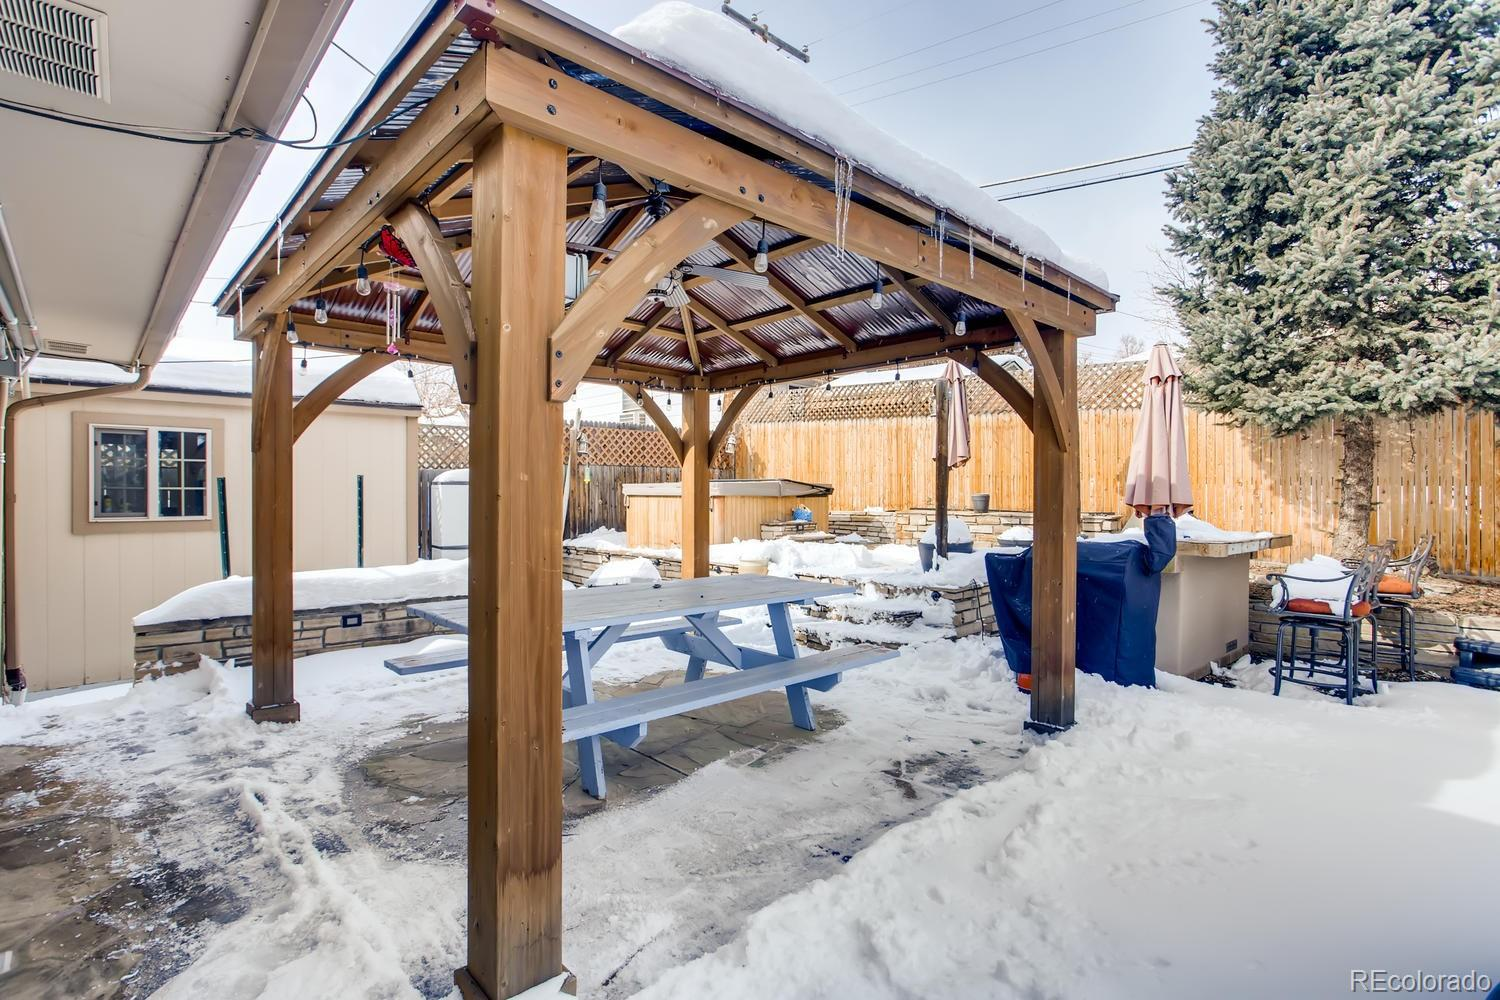 MLS# 4853831 - 22 - 13905 W 6th Place, Golden, CO 80401